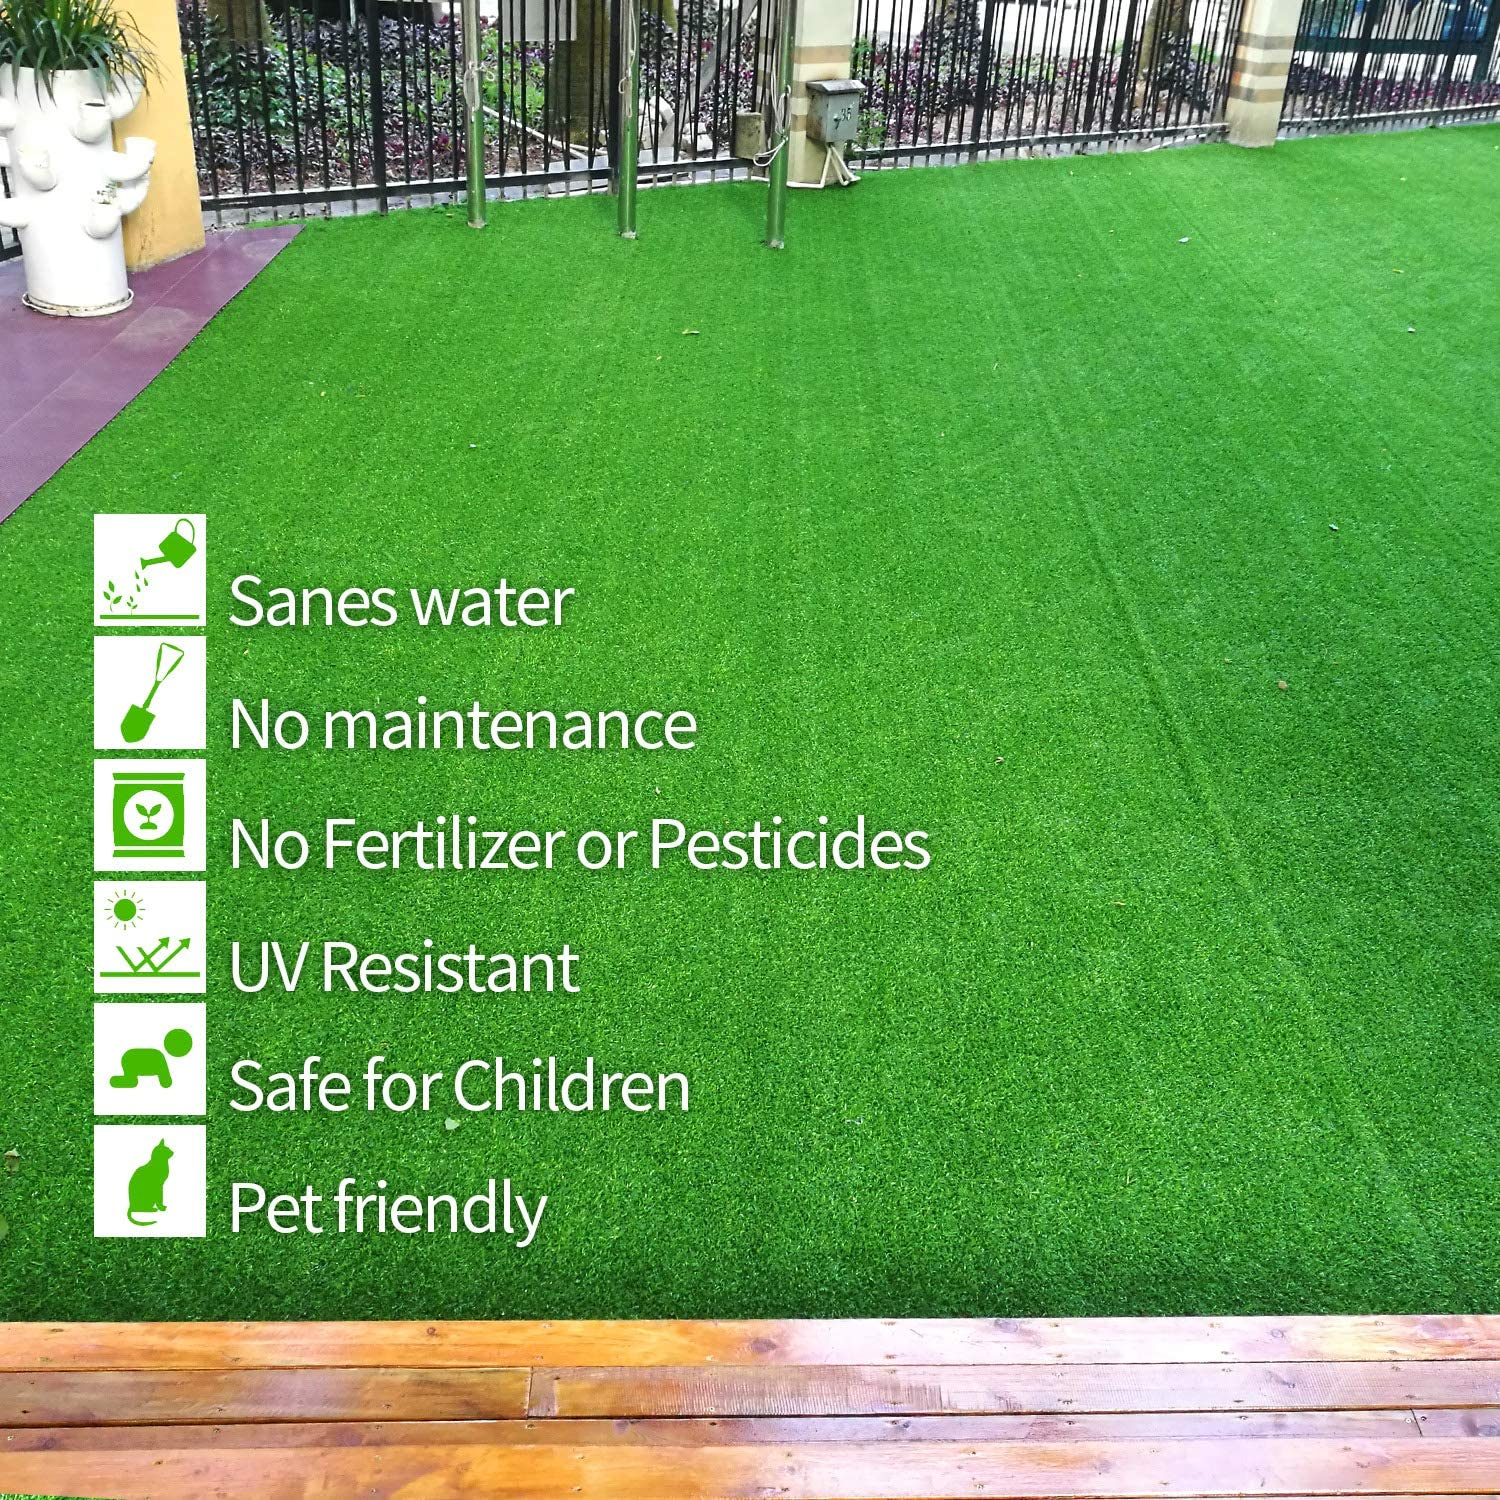 RoundLove Artificial Grass Turf Lush /& Hard Pet Turf Astroturf Rug Fake Turf for Indoor /& Outdoor Decor 3 Tone Synthetic Grass Patch Mat w//Drainage Holes